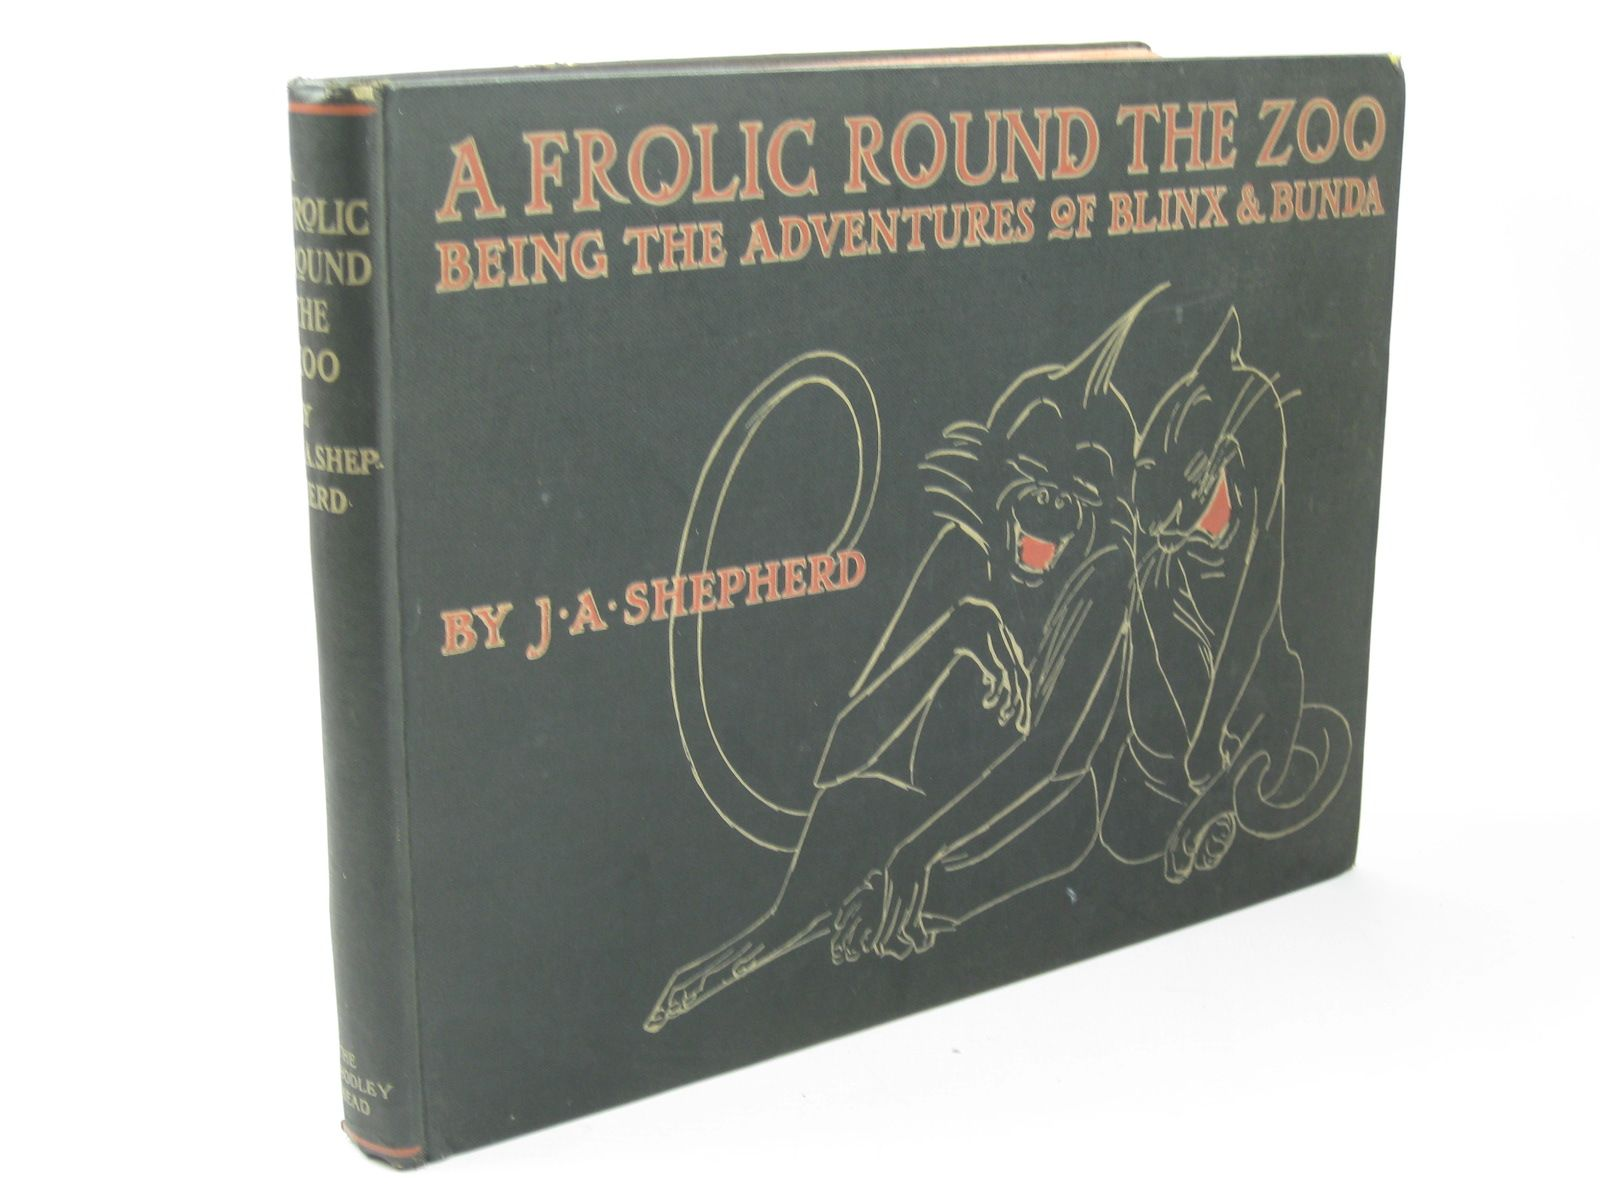 Photo of A FROLIC ROUND THE ZOO BEING THE ADVENTURES OF BLINX AND BUNDA written by Shepherd, J.A. illustrated by Shepherd, J.A. published by John Lane The Bodley Head (STOCK CODE: 1312181)  for sale by Stella & Rose's Books